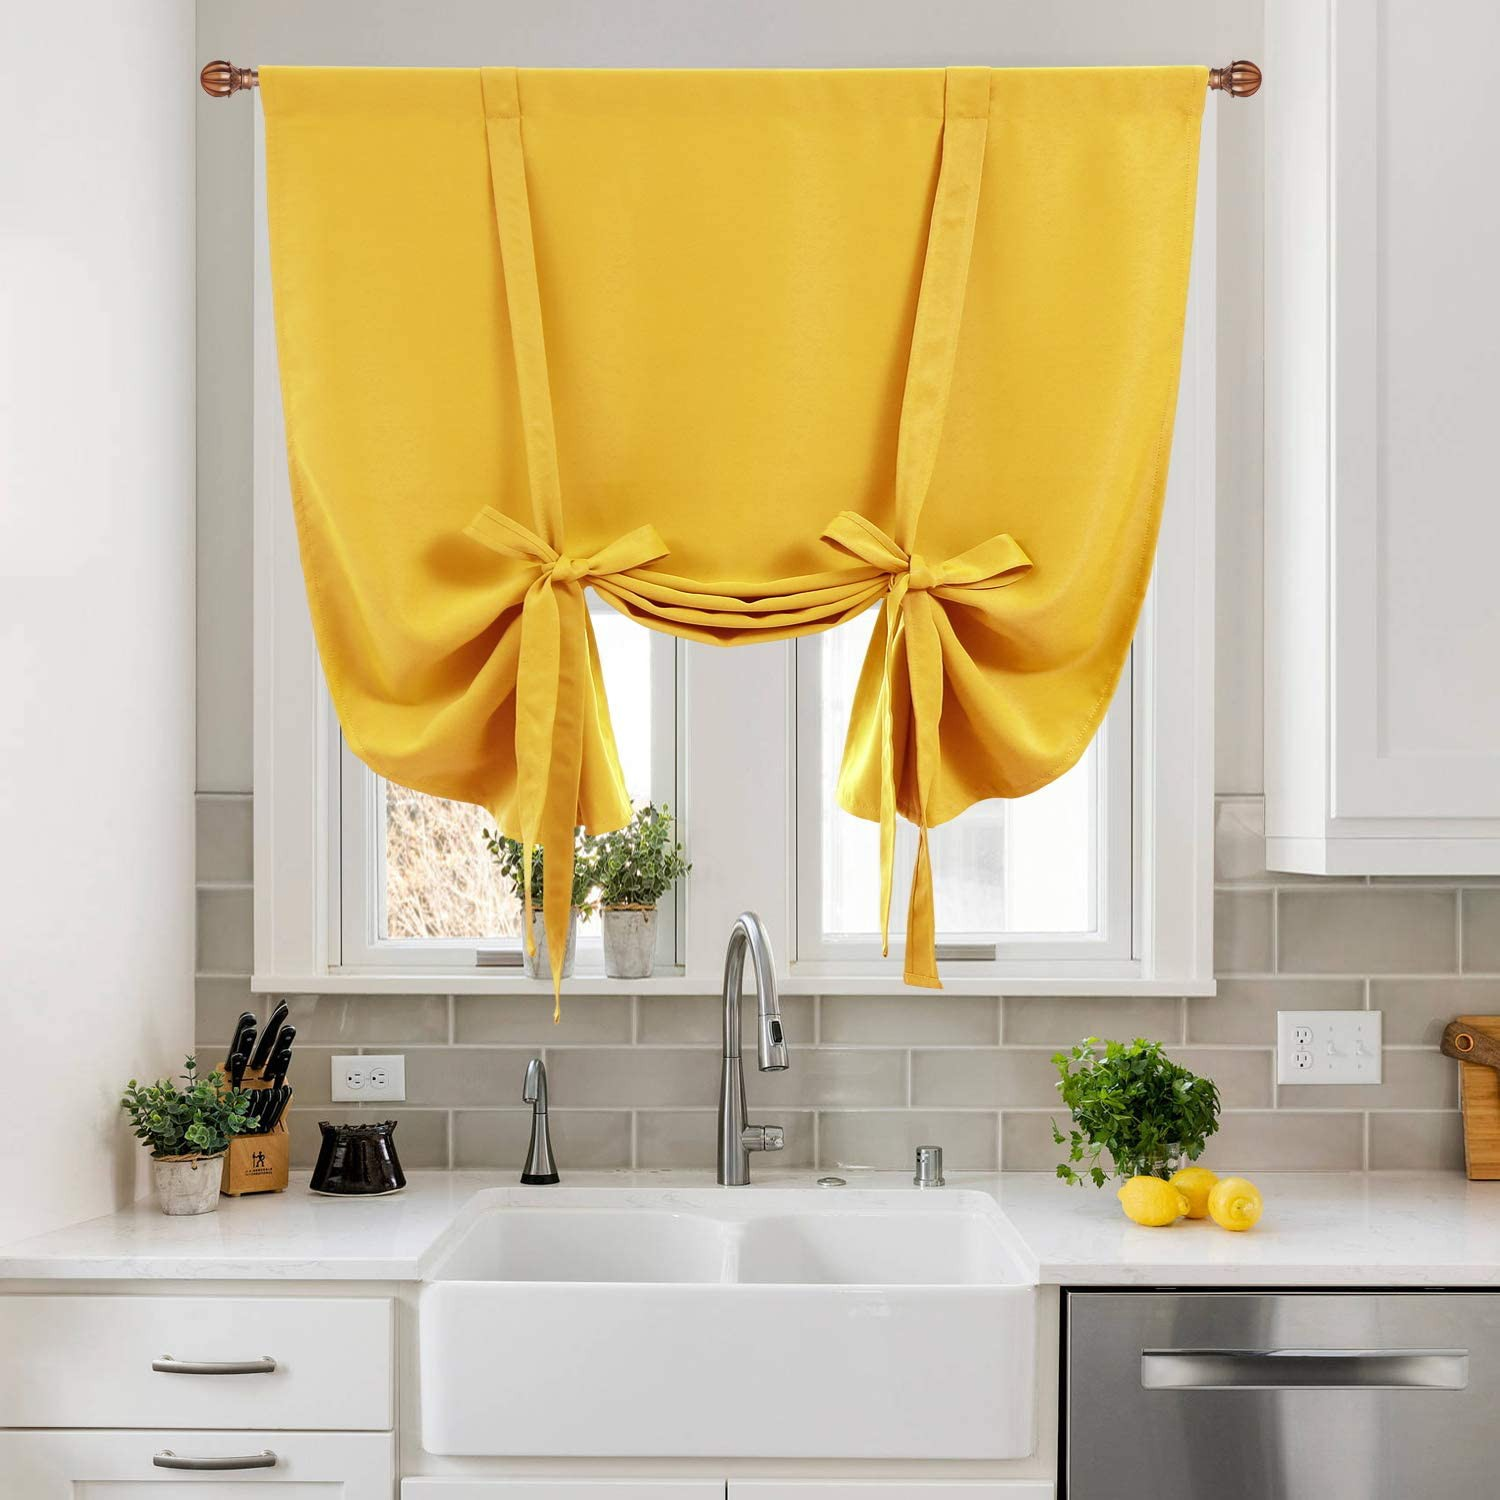 5. Yellow Tie-up Curtain